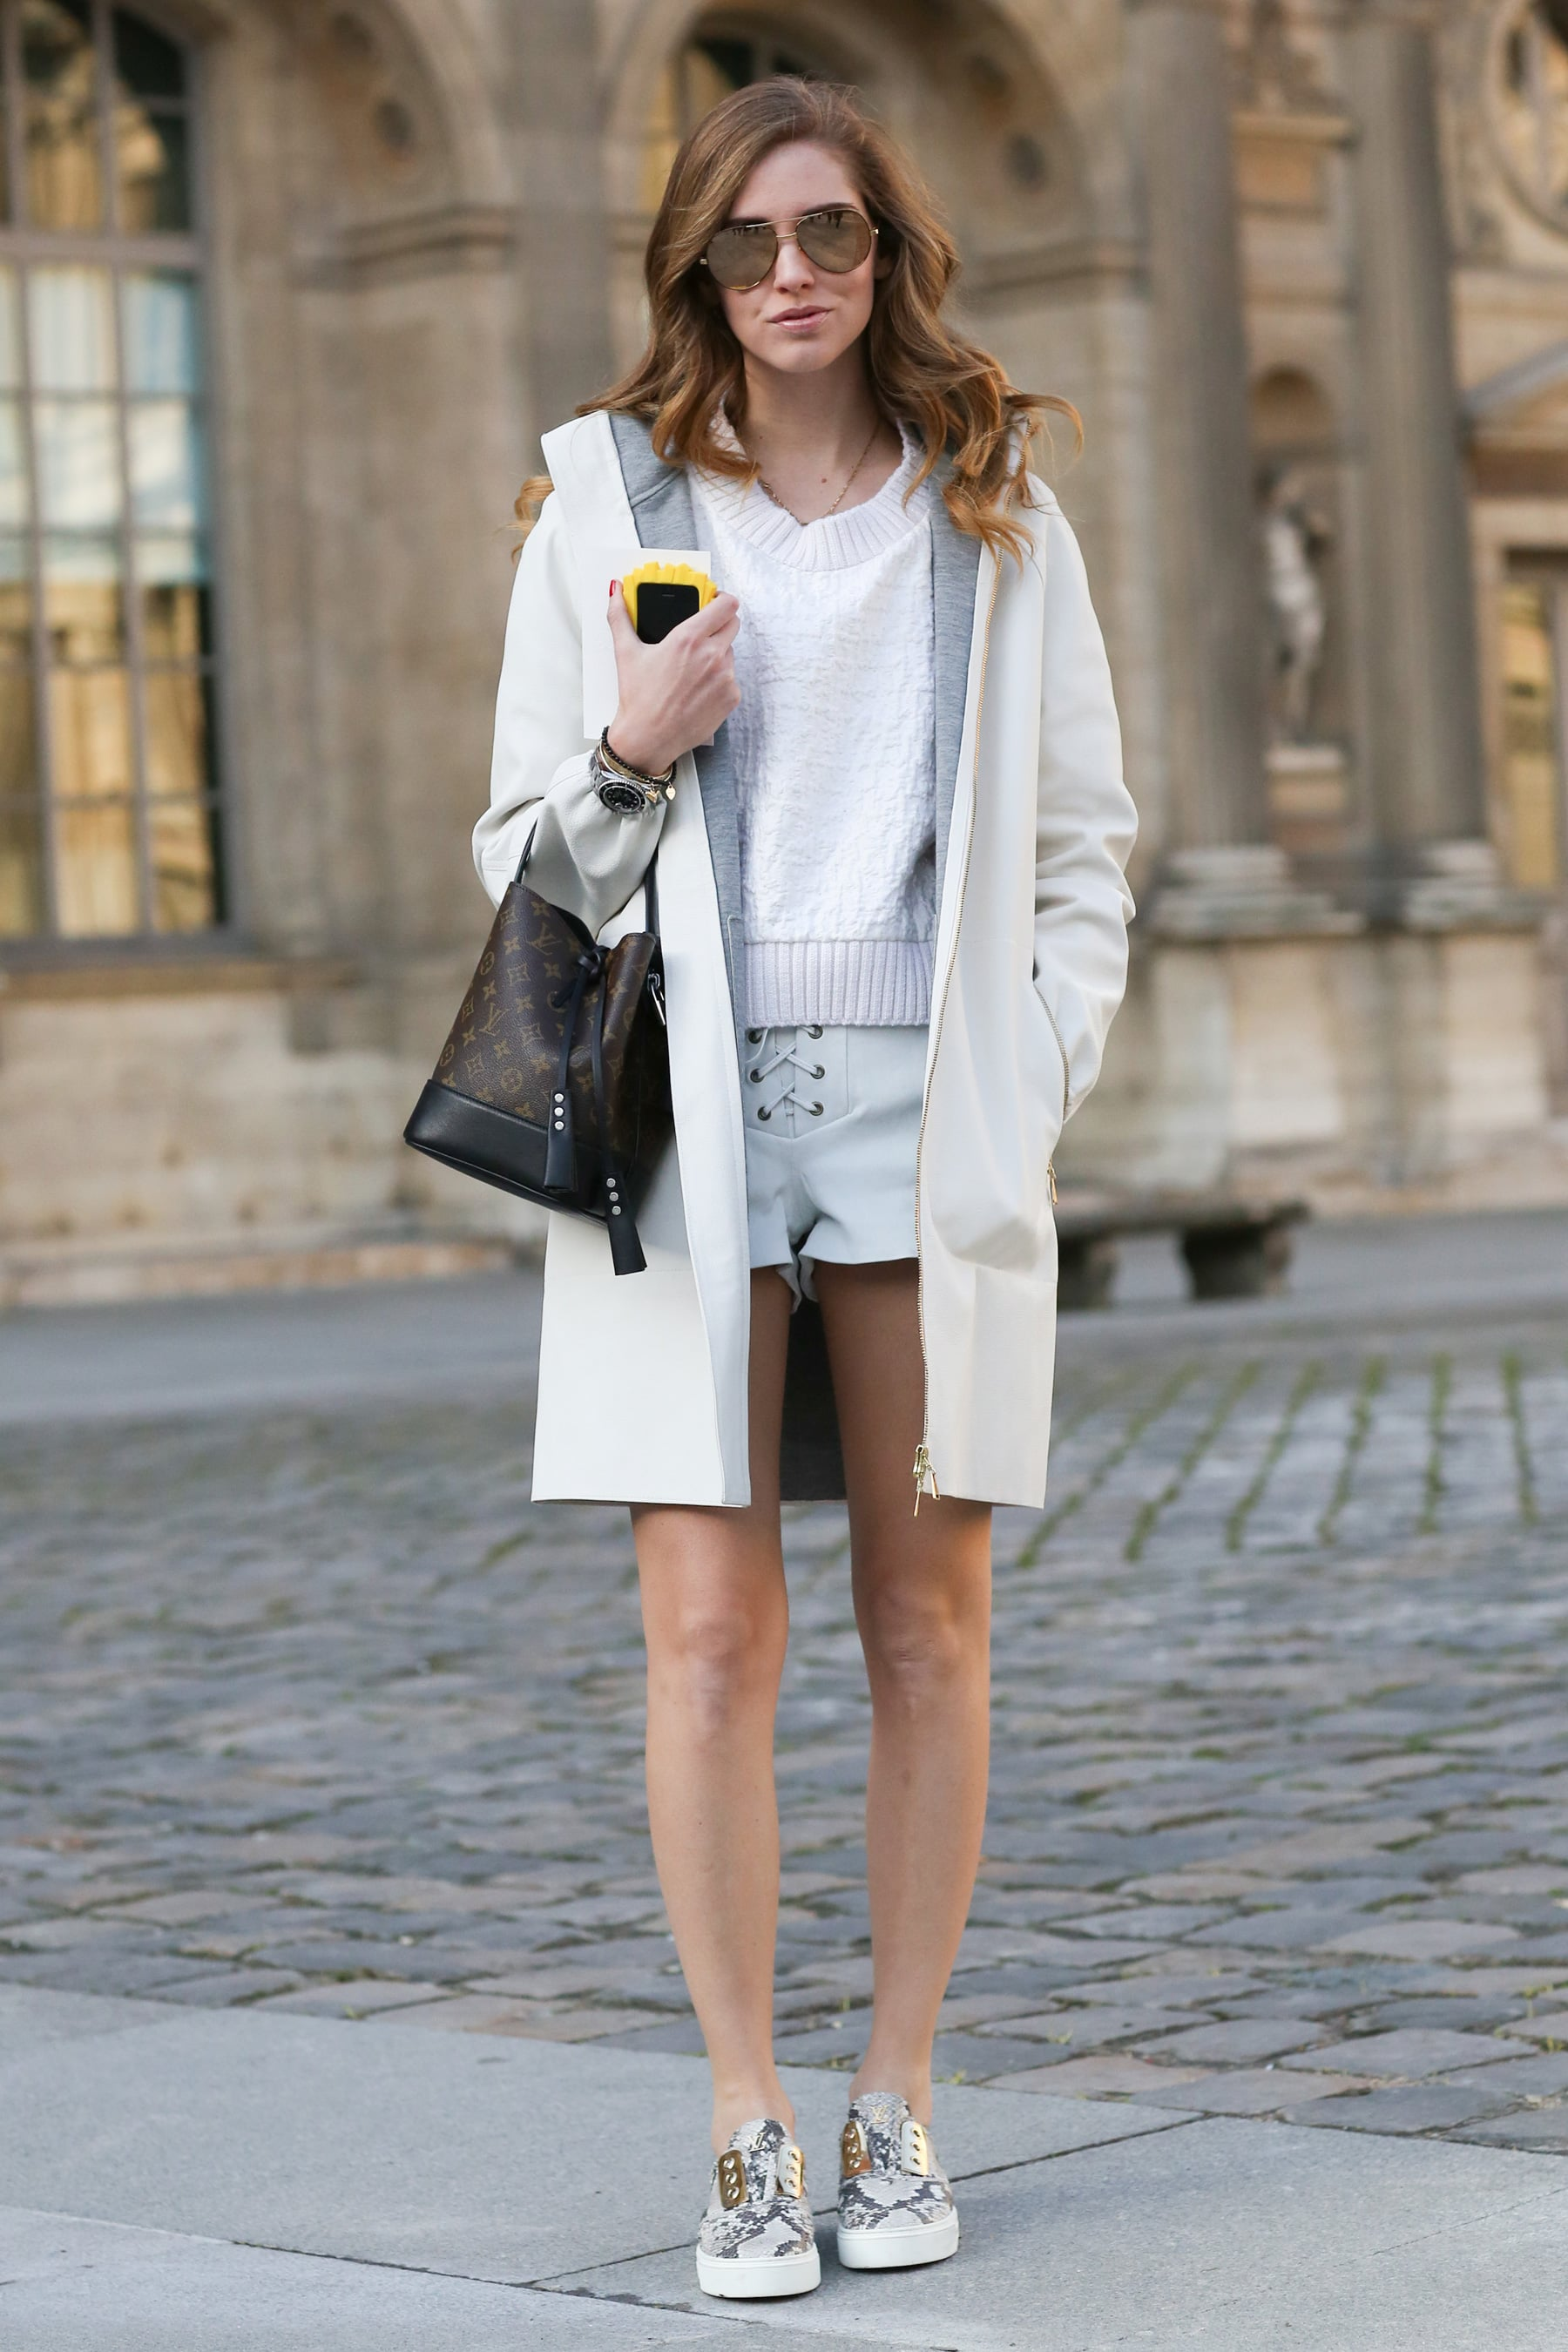 Chiara Ferragni's slip-ons lend just the right sporty vibe to finish off her shorts and sweater combo.